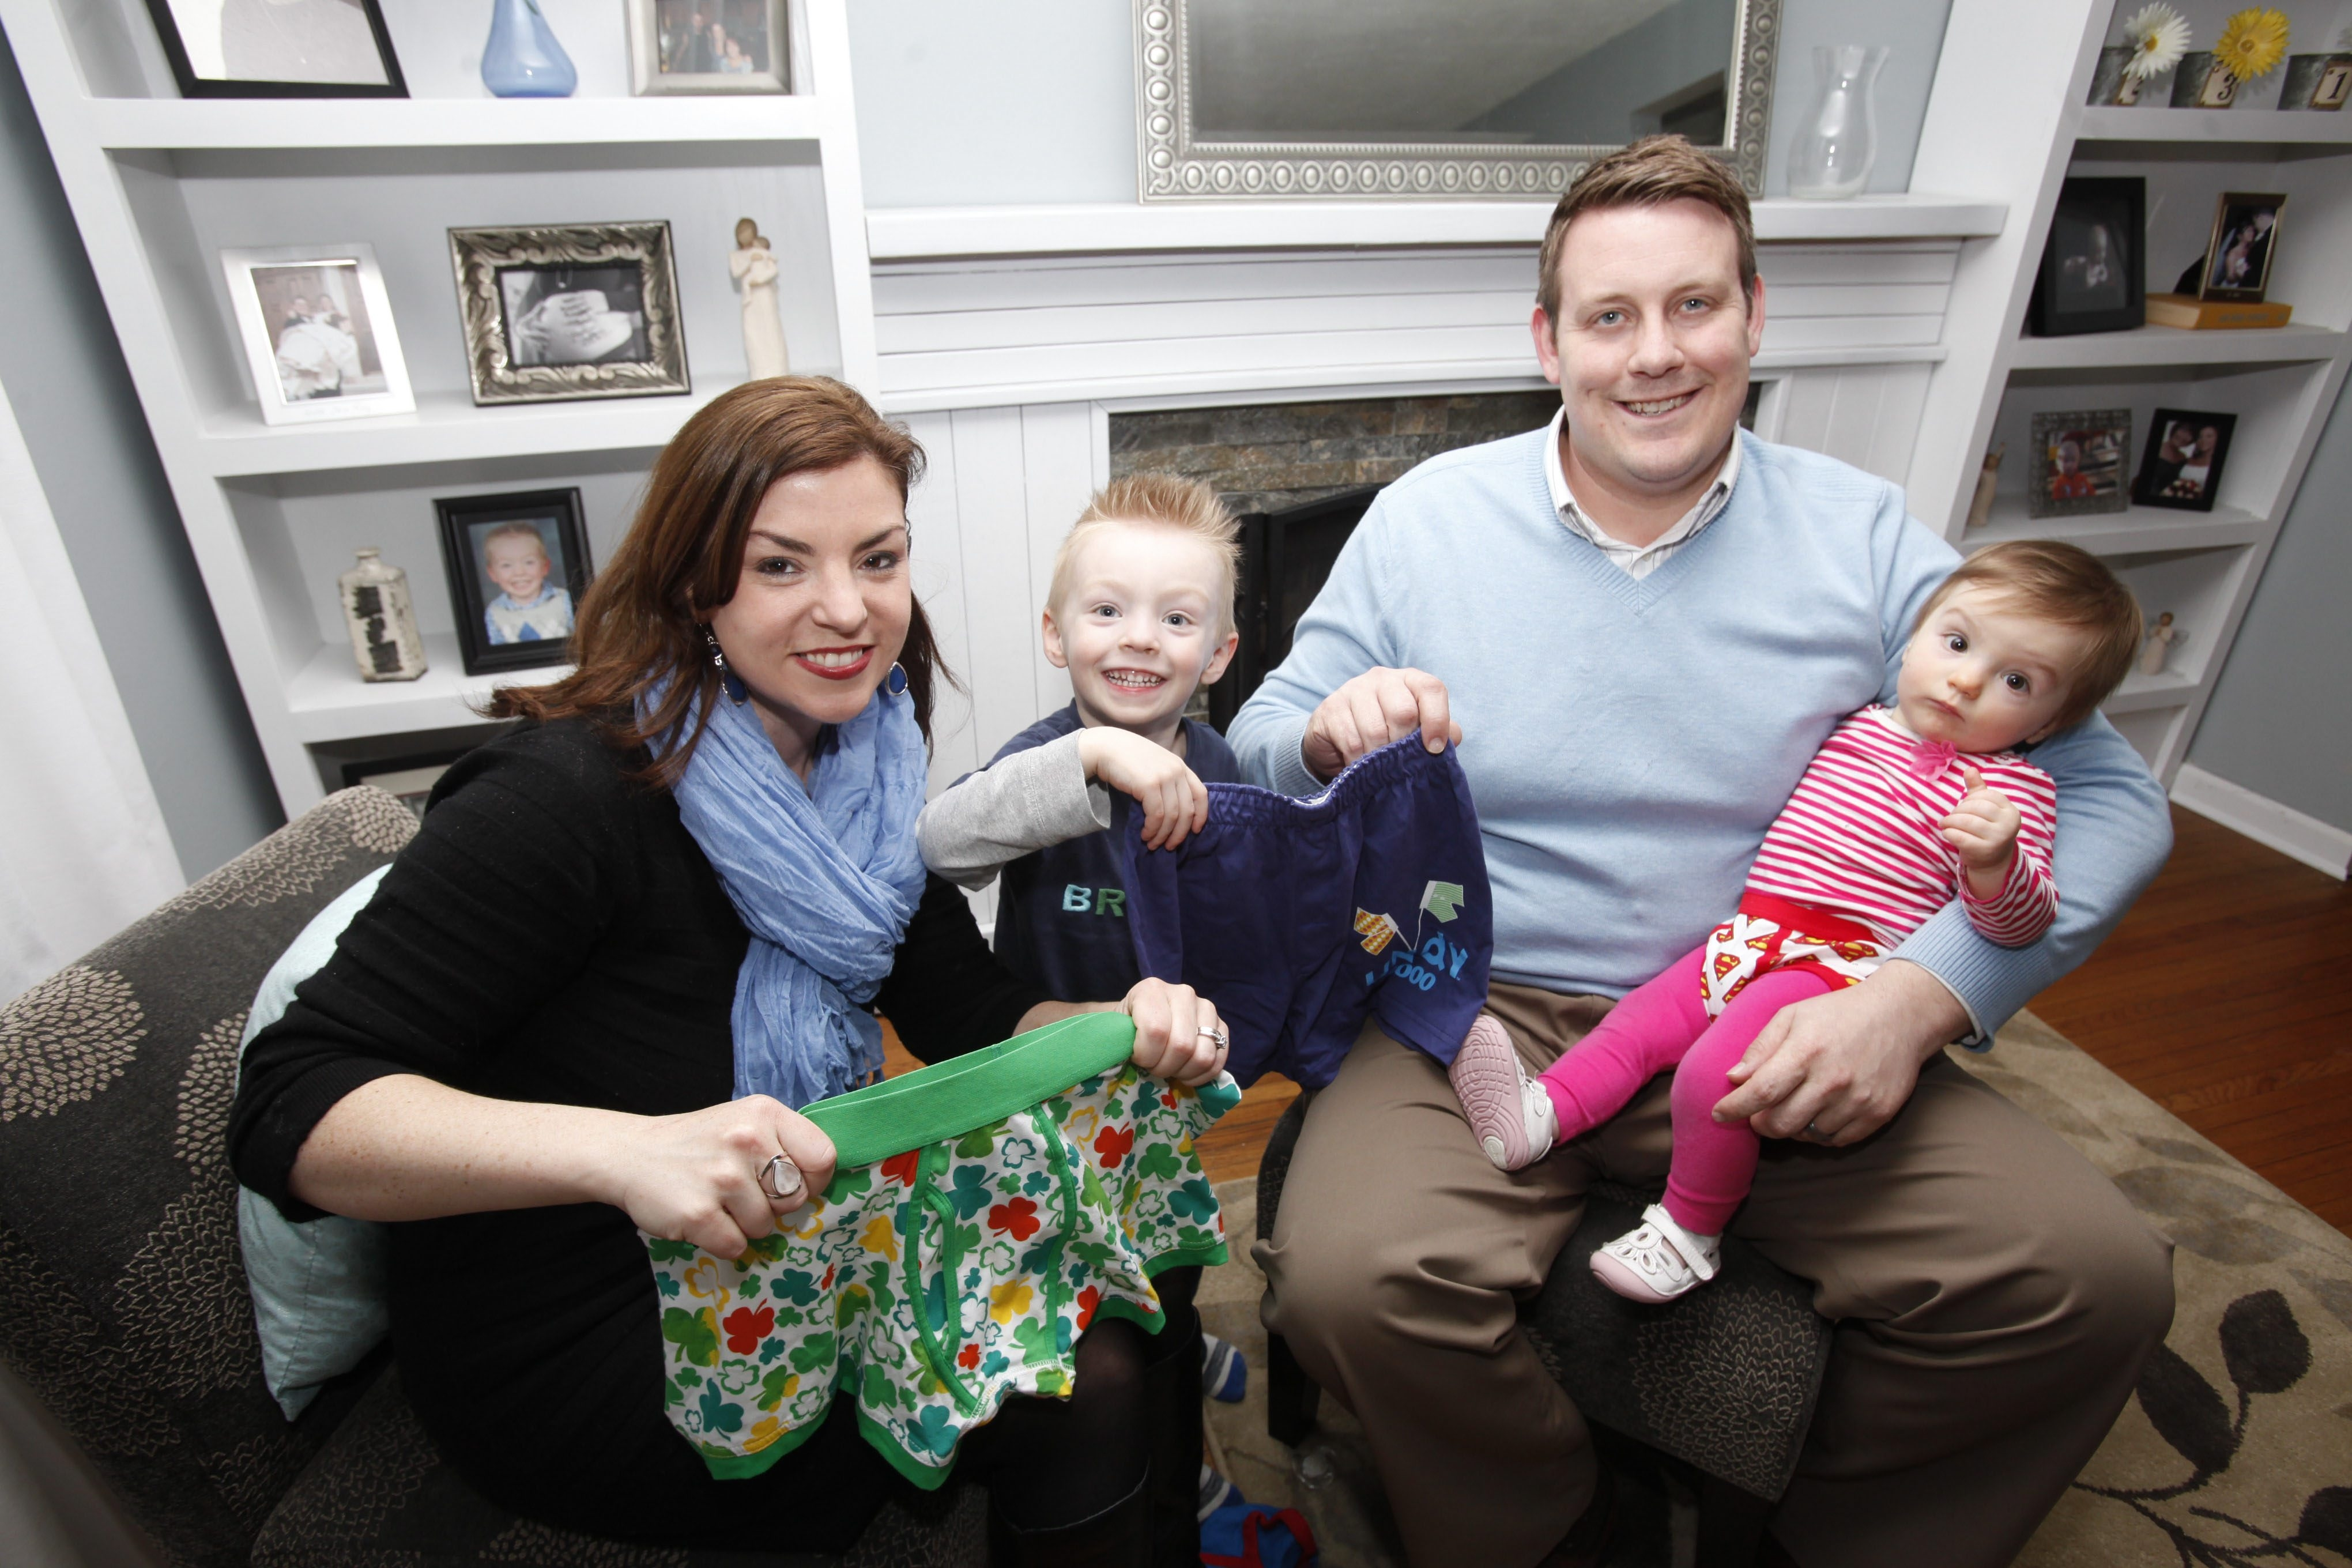 Tess Fraser, with son Patrick, daughter Evelyn and husband Don, hold underwear to promote the Undy 5000, a race to raise colon cancer awareness.